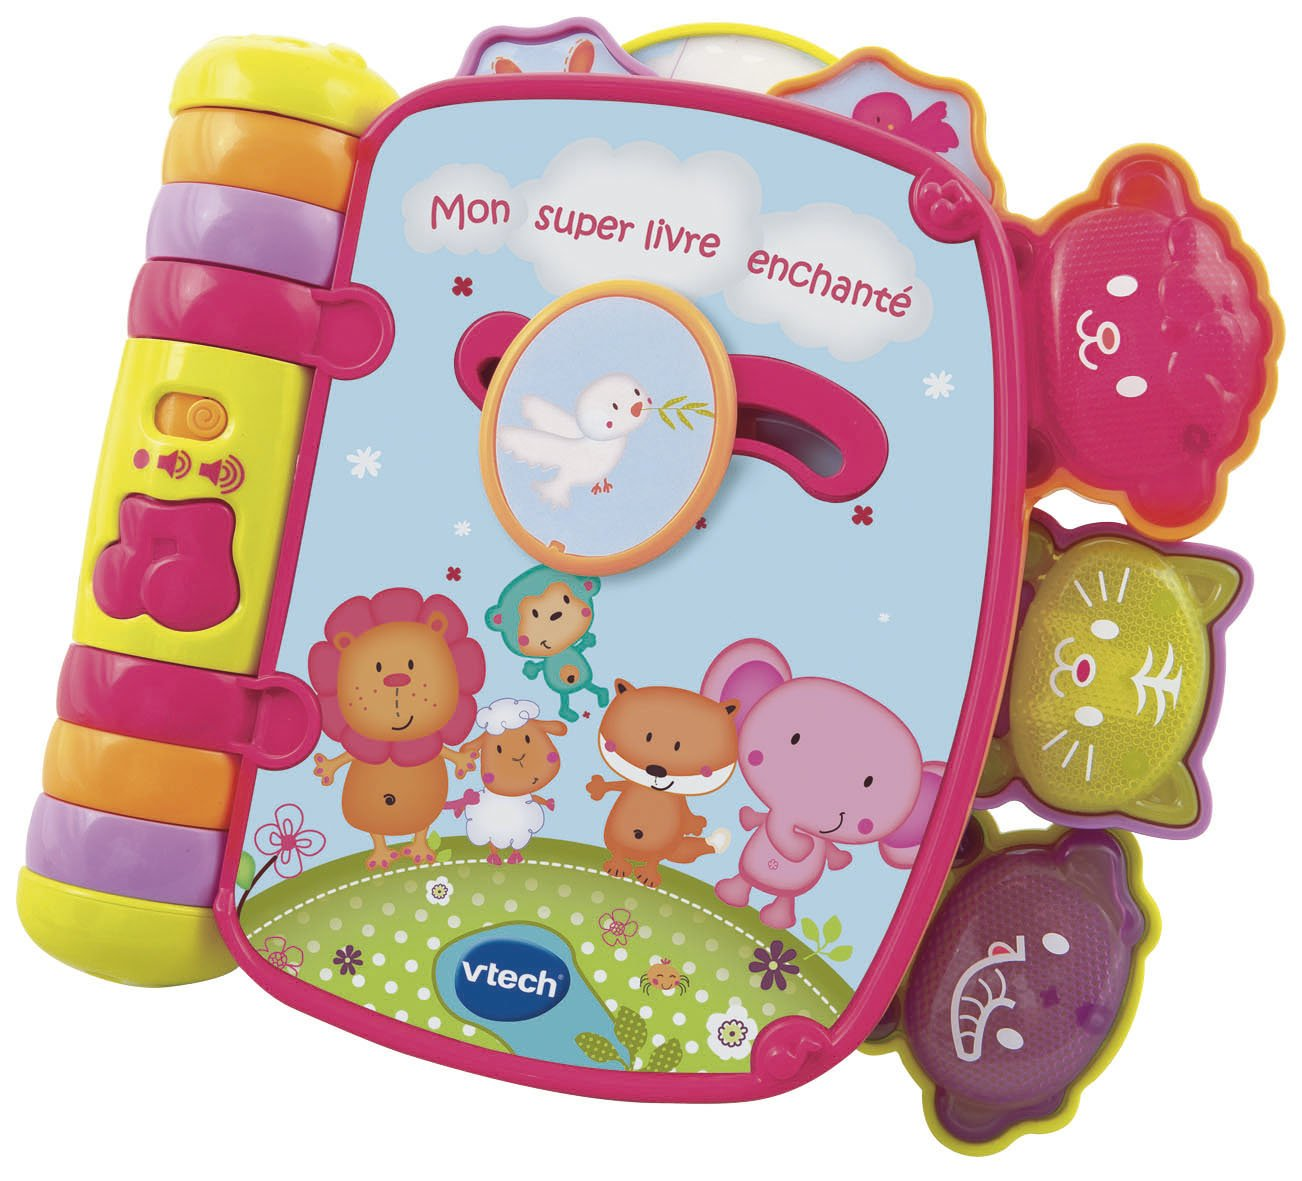 Vtech Nouveau Super Livre Enchante Rose Amazon Co Uk Baby